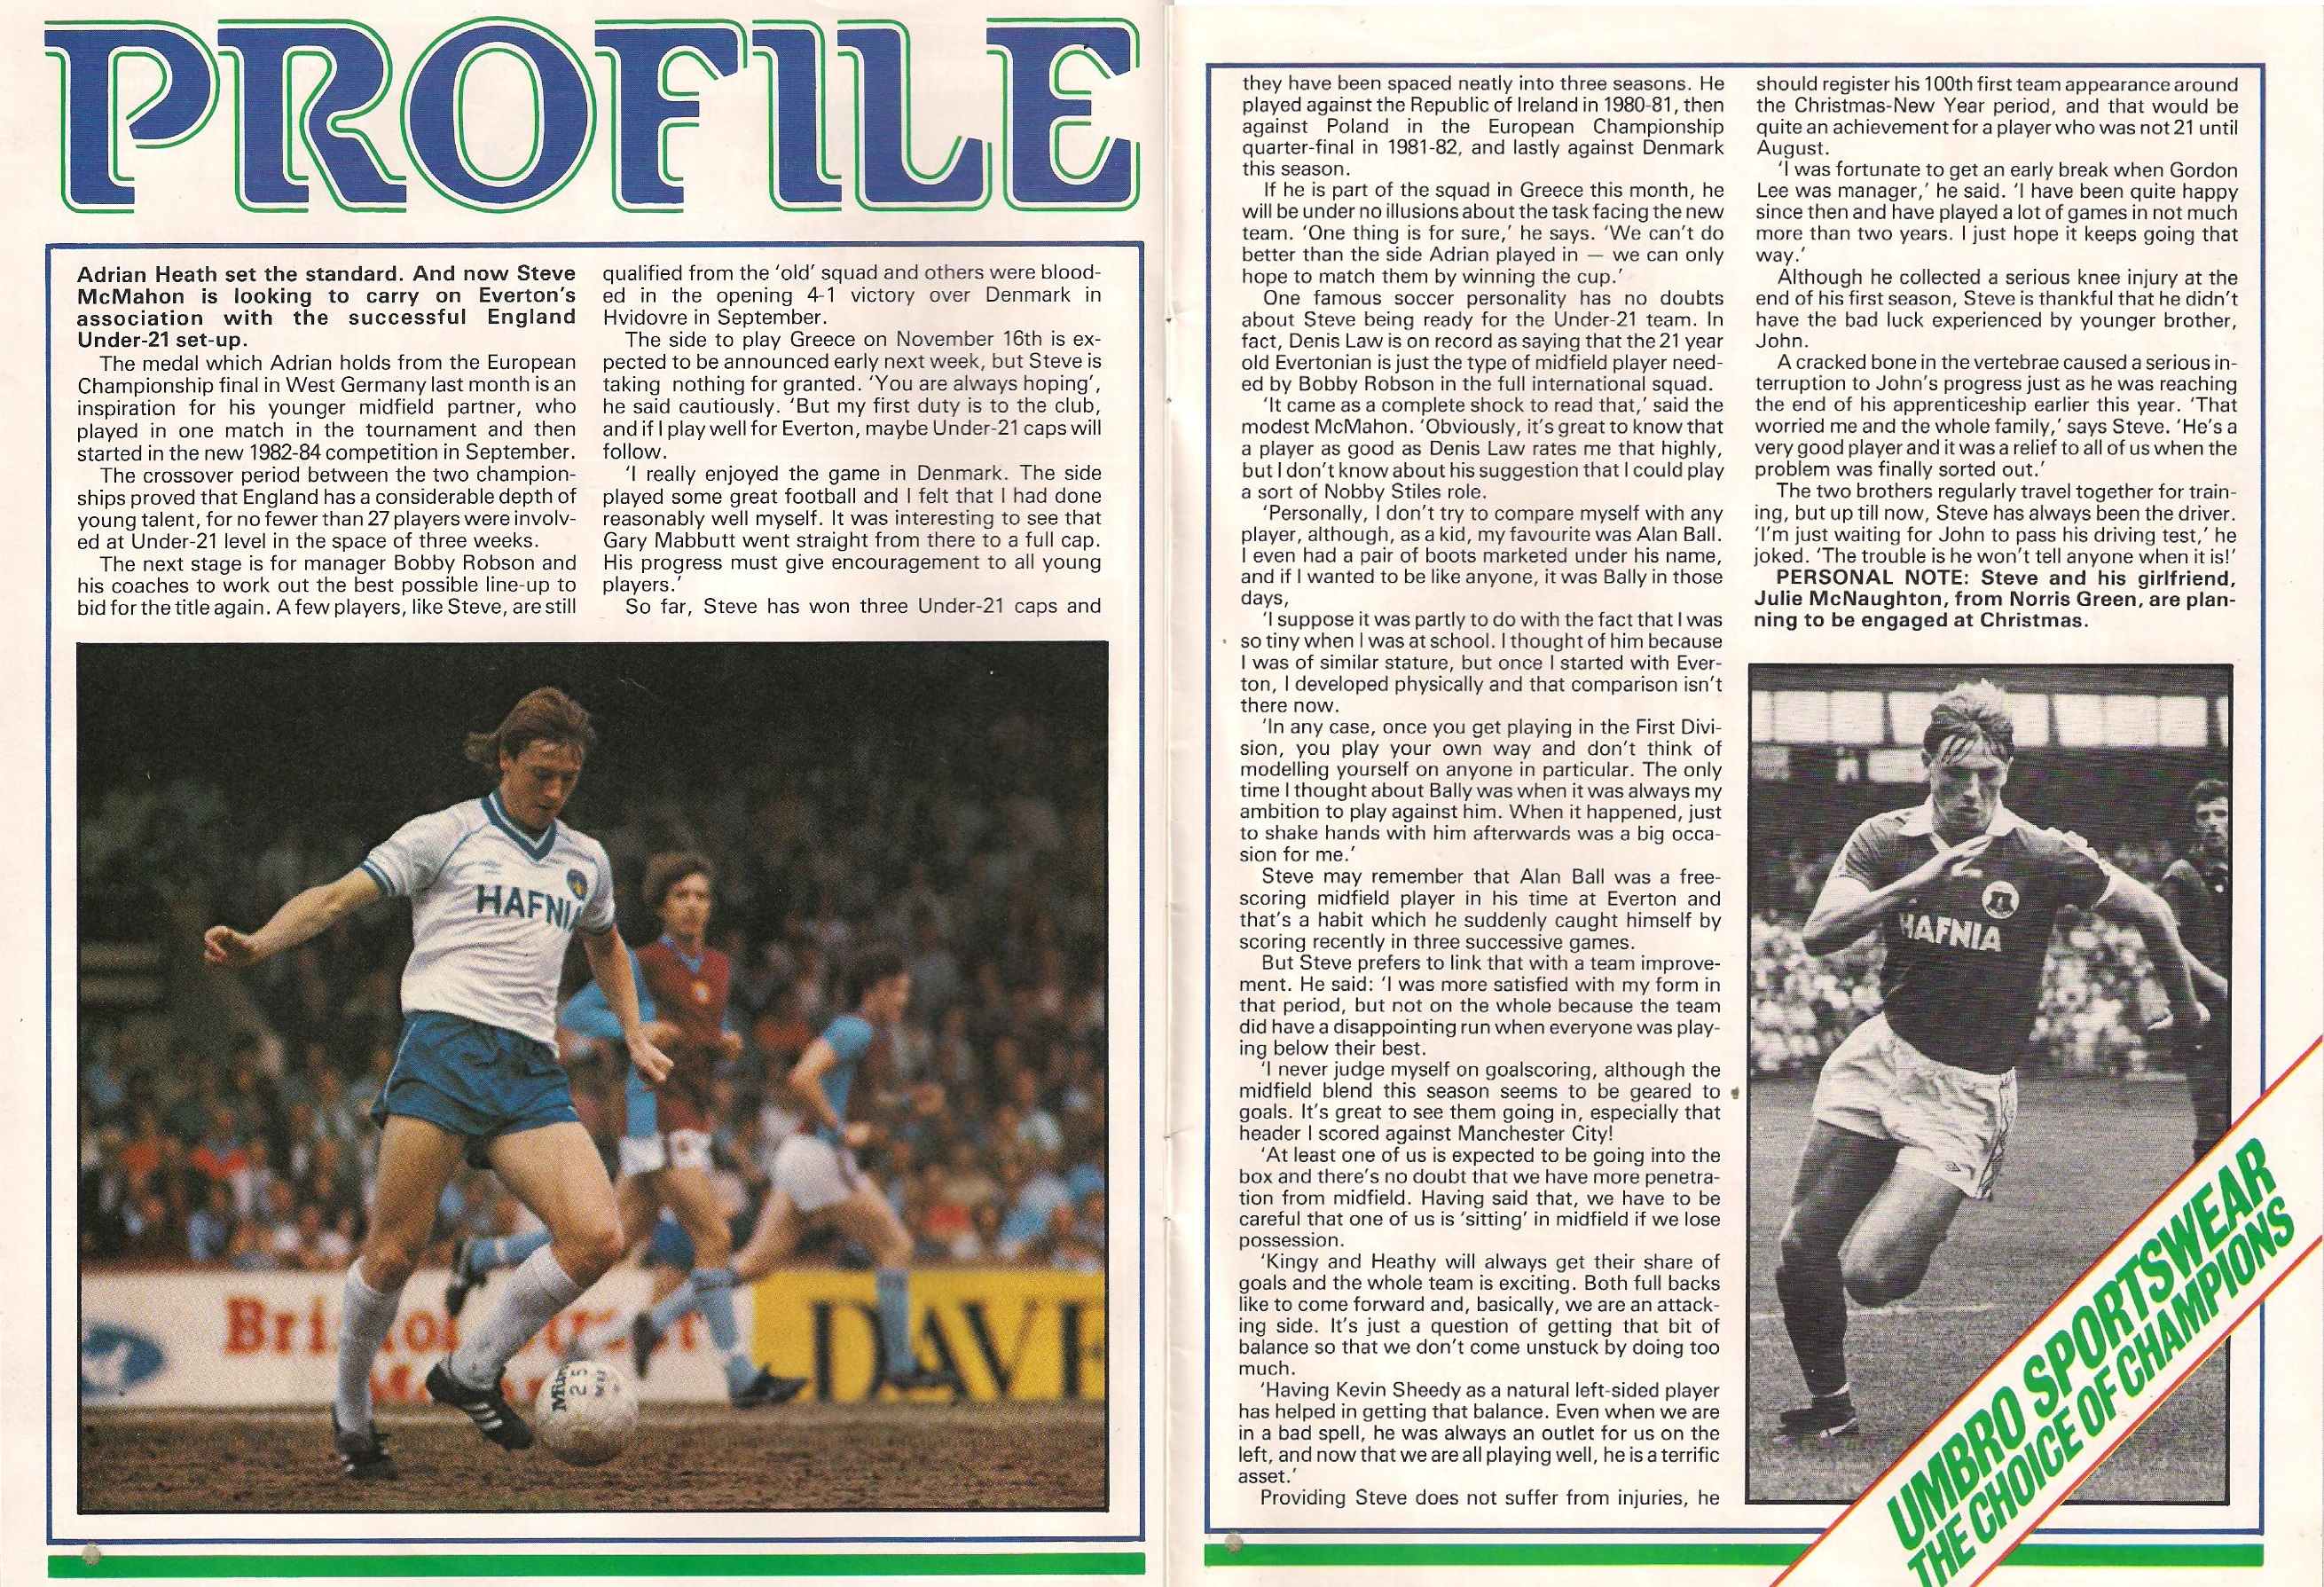 Everton's Steve McMahon in profile 1982